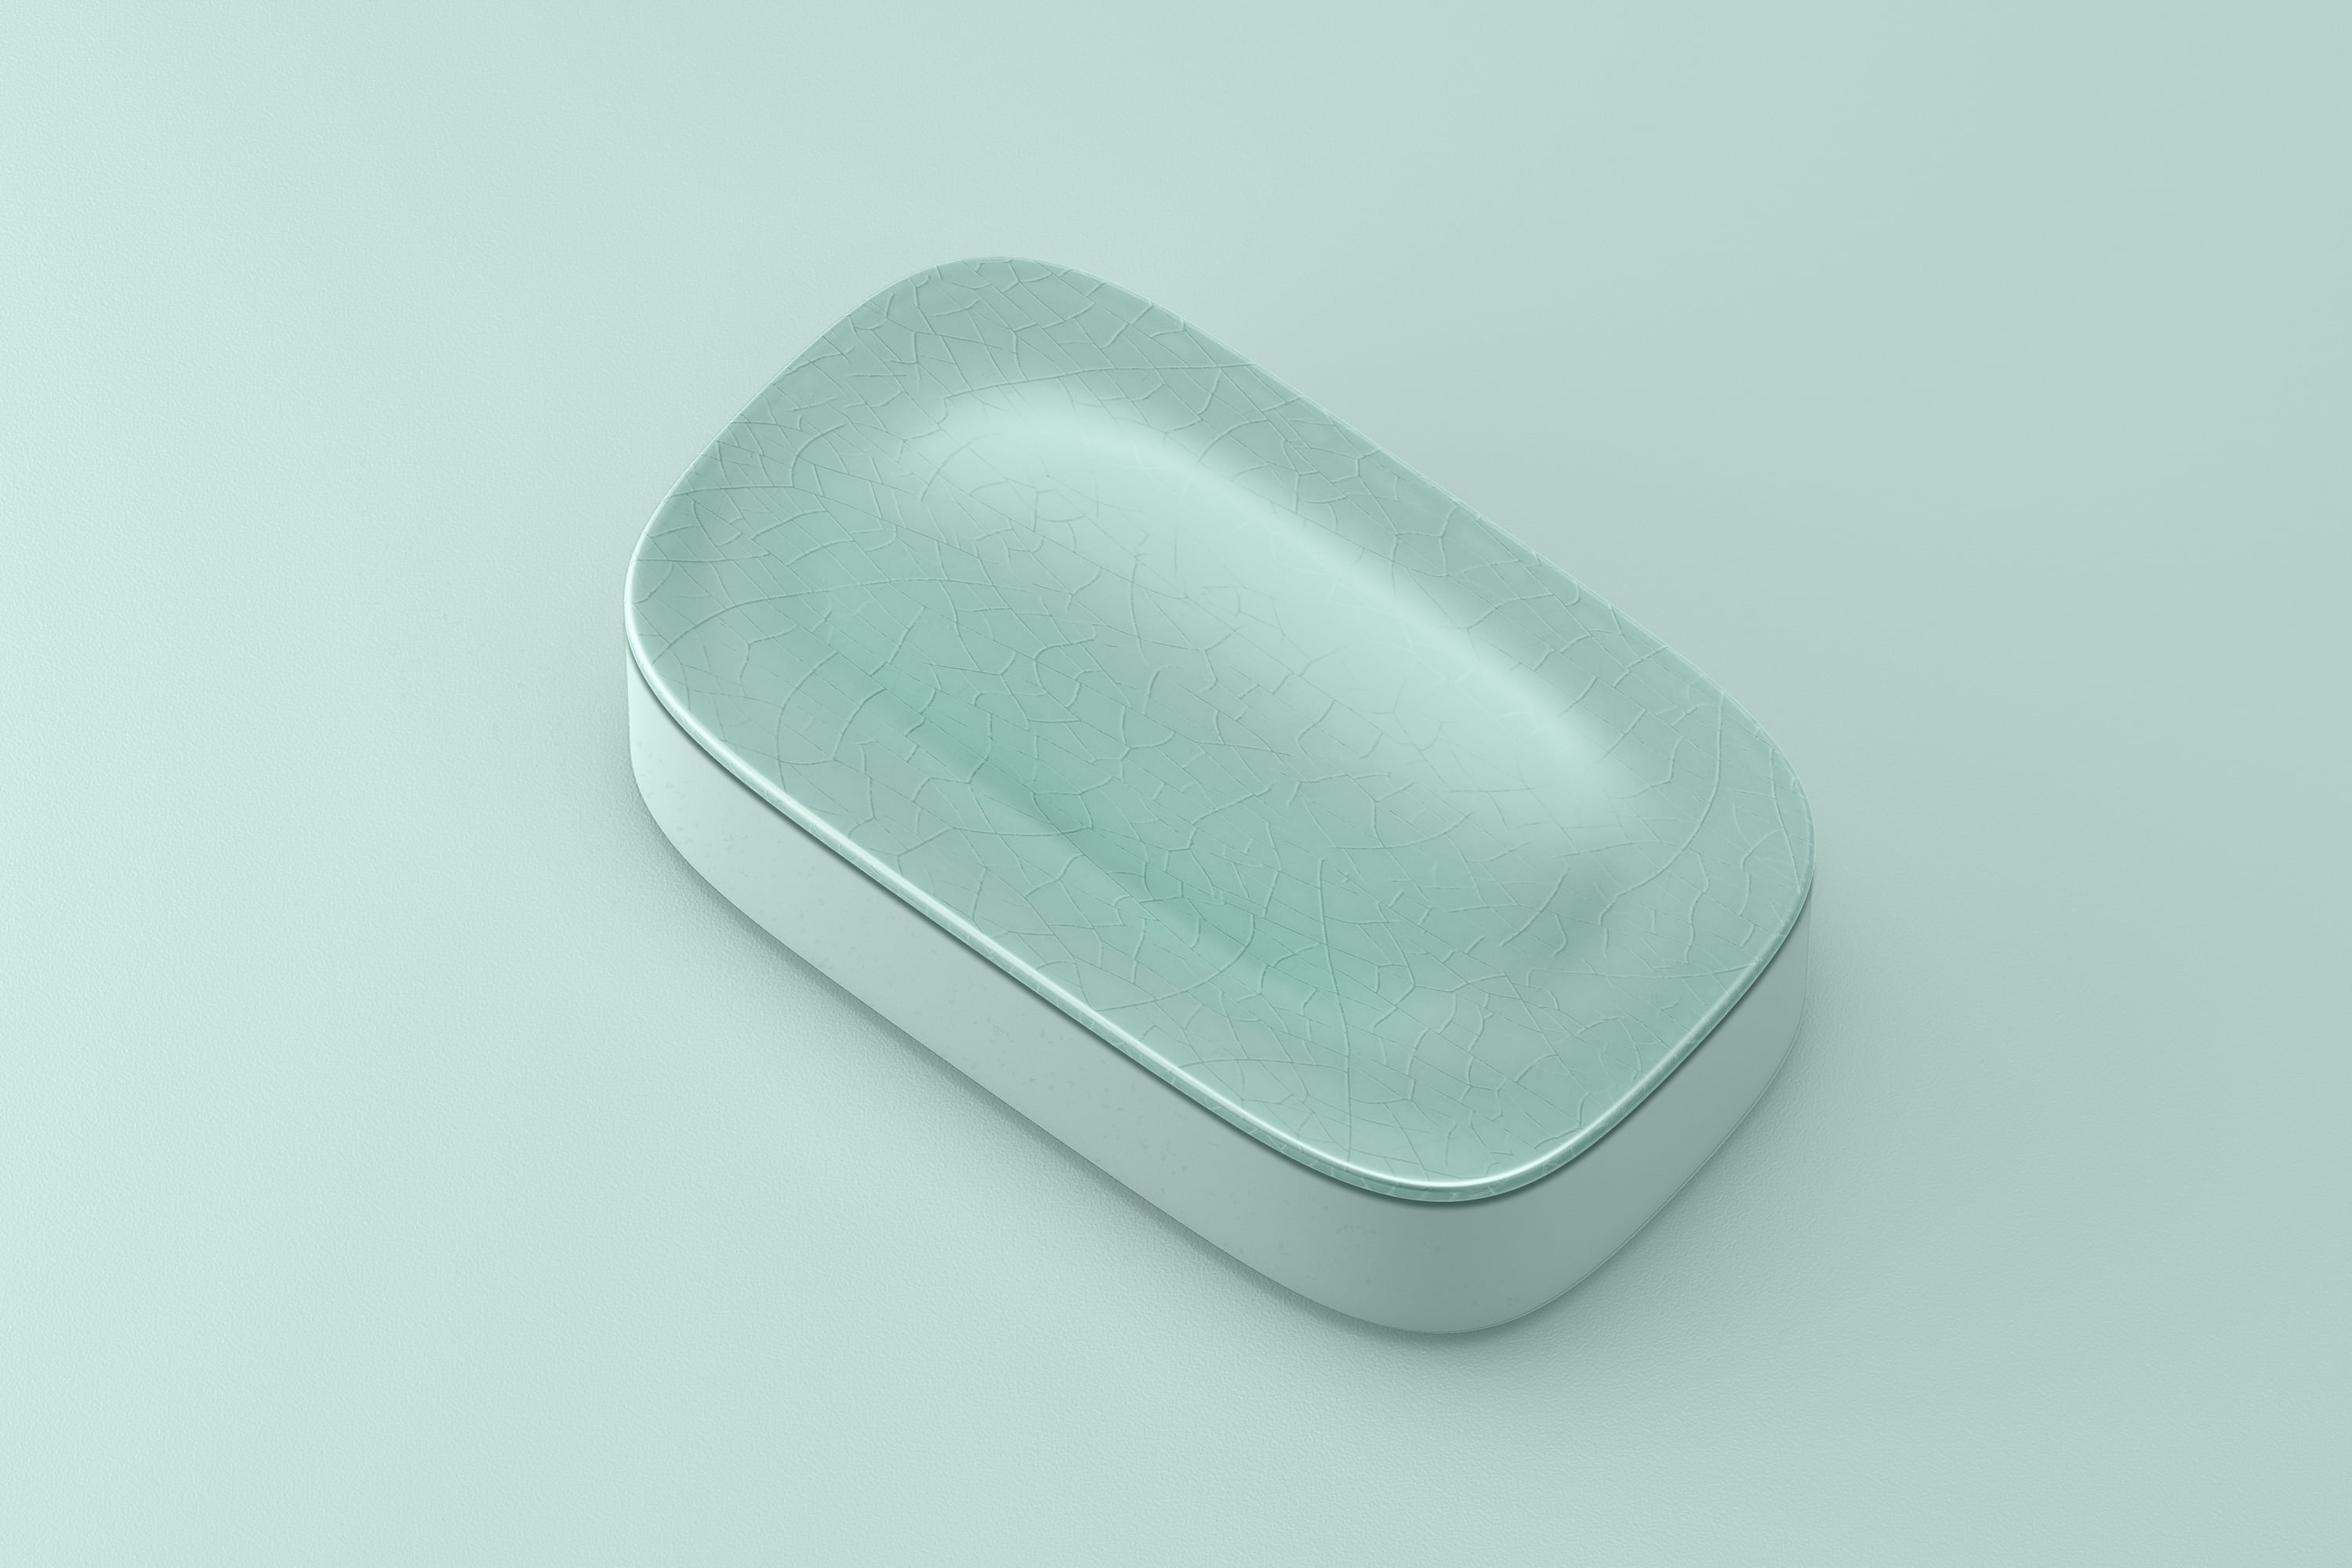 Blond-Design-Agency-Cosmetics-Packaging-Sustainable-Eco-Deodorant-Dish-02